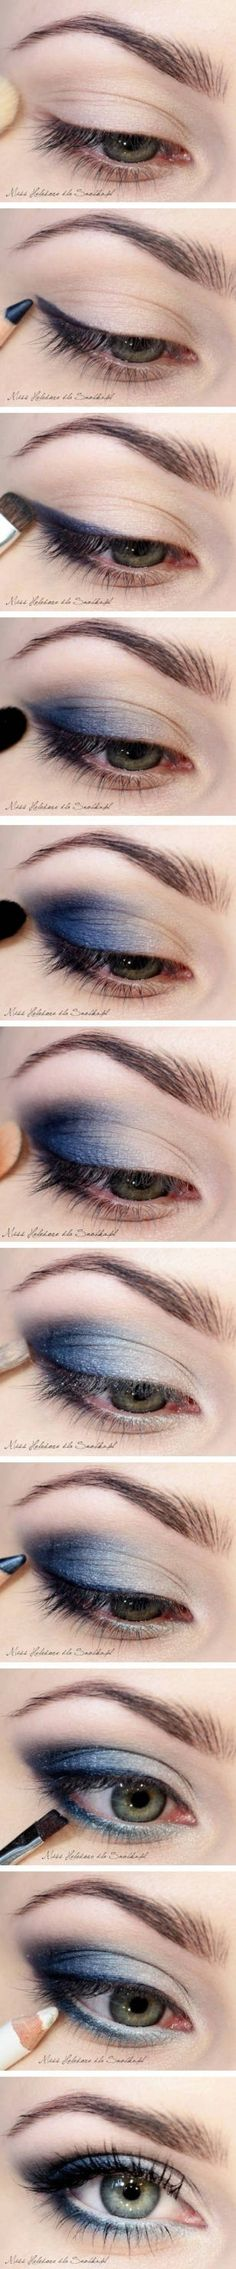 Blue smokey eye technique PROMOTIONS Real Techniques brushes makeup -$10 http://youtu.be/29EgiGBMWCI #realtechniques #realtechniquesbrushes #makeup #makeupbrushes #makeupartist